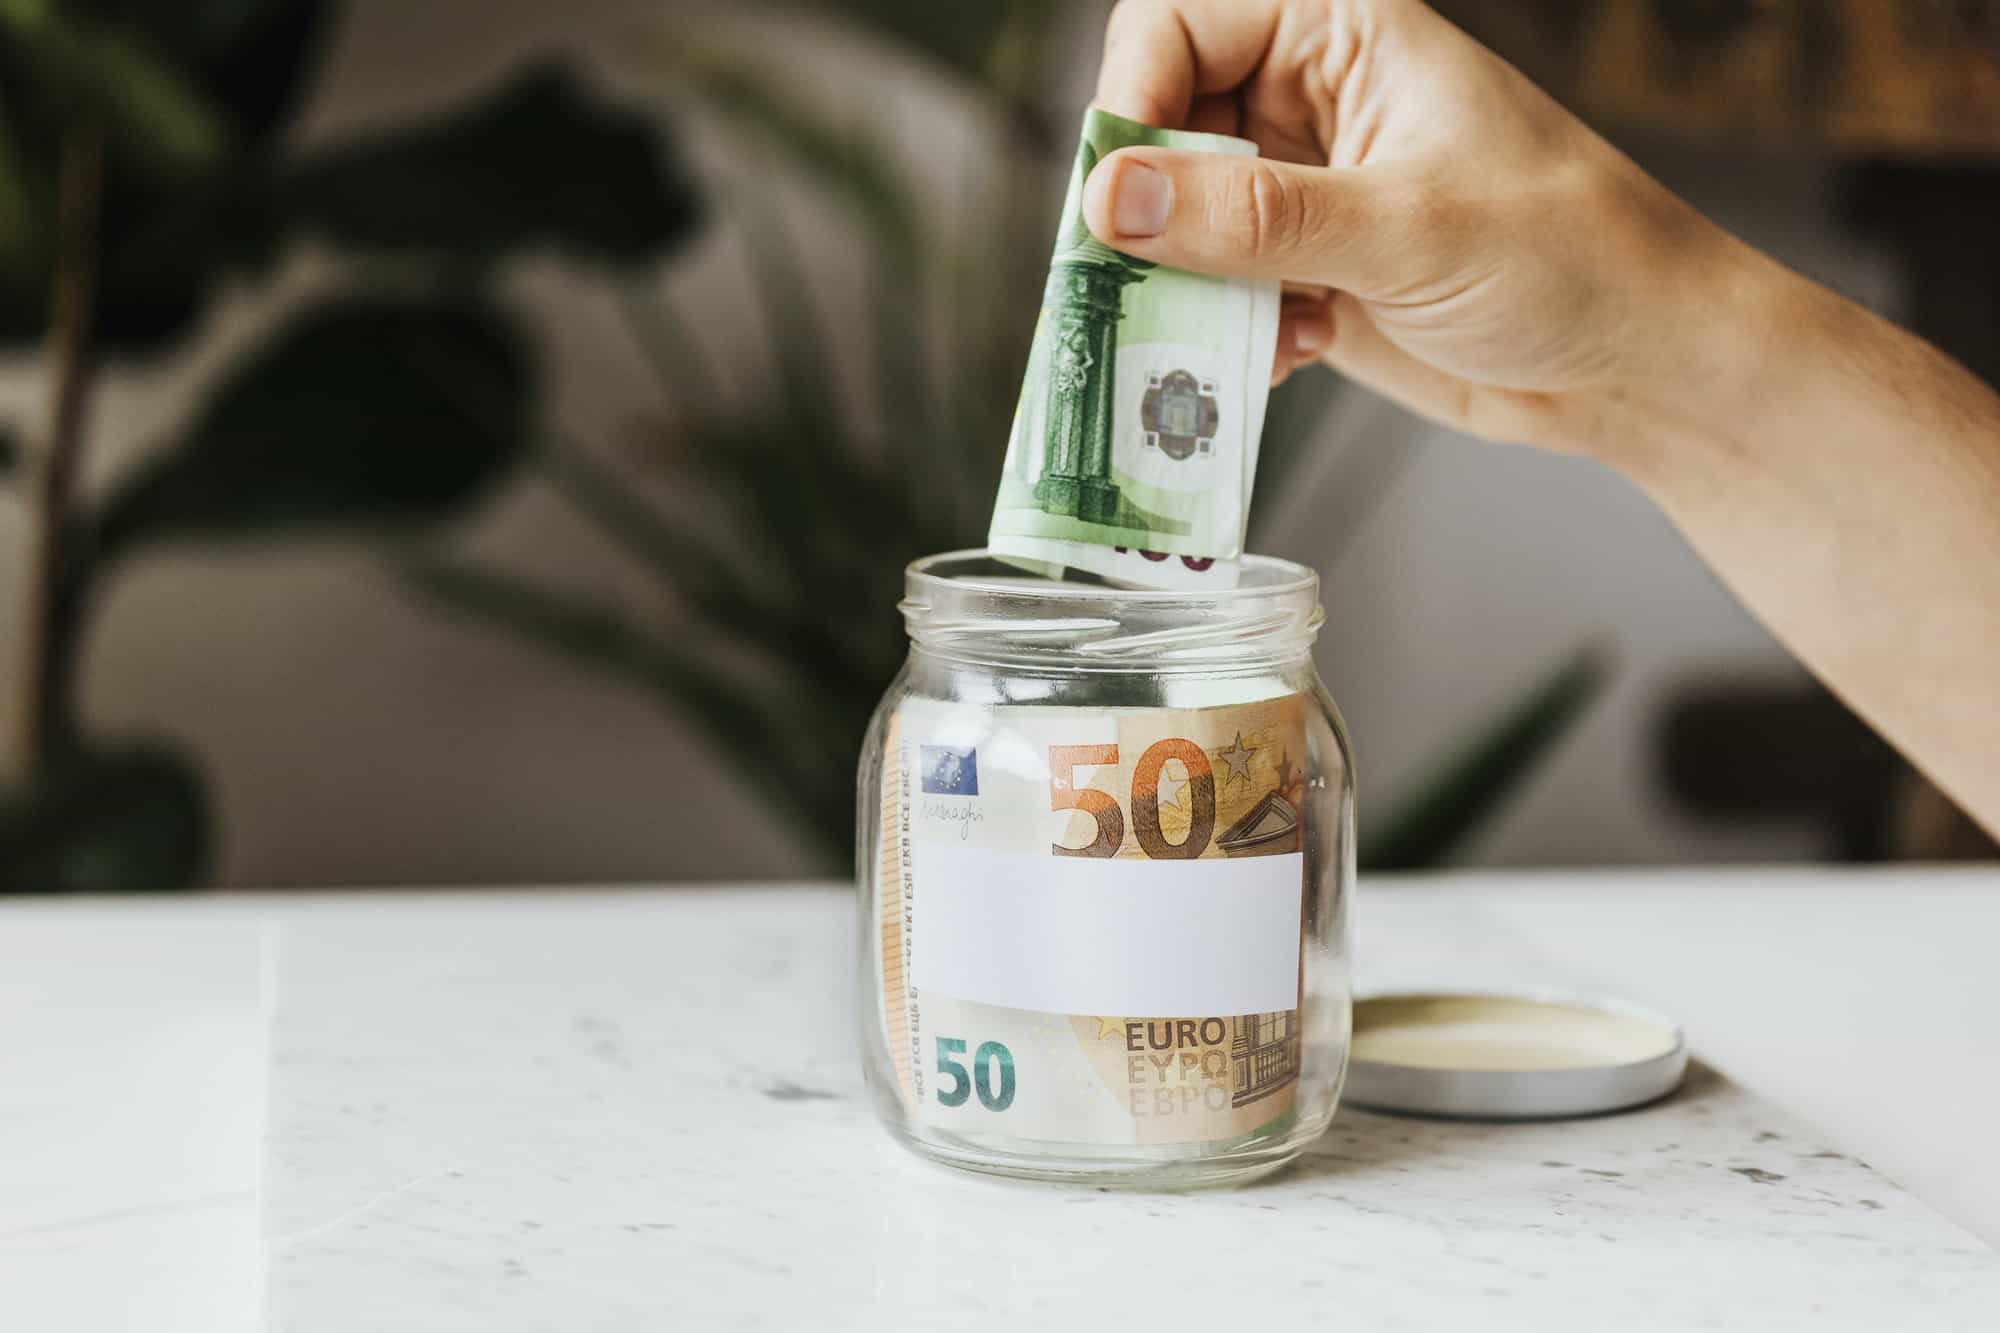 Saving money in a jar during the COVID-19 pandemic